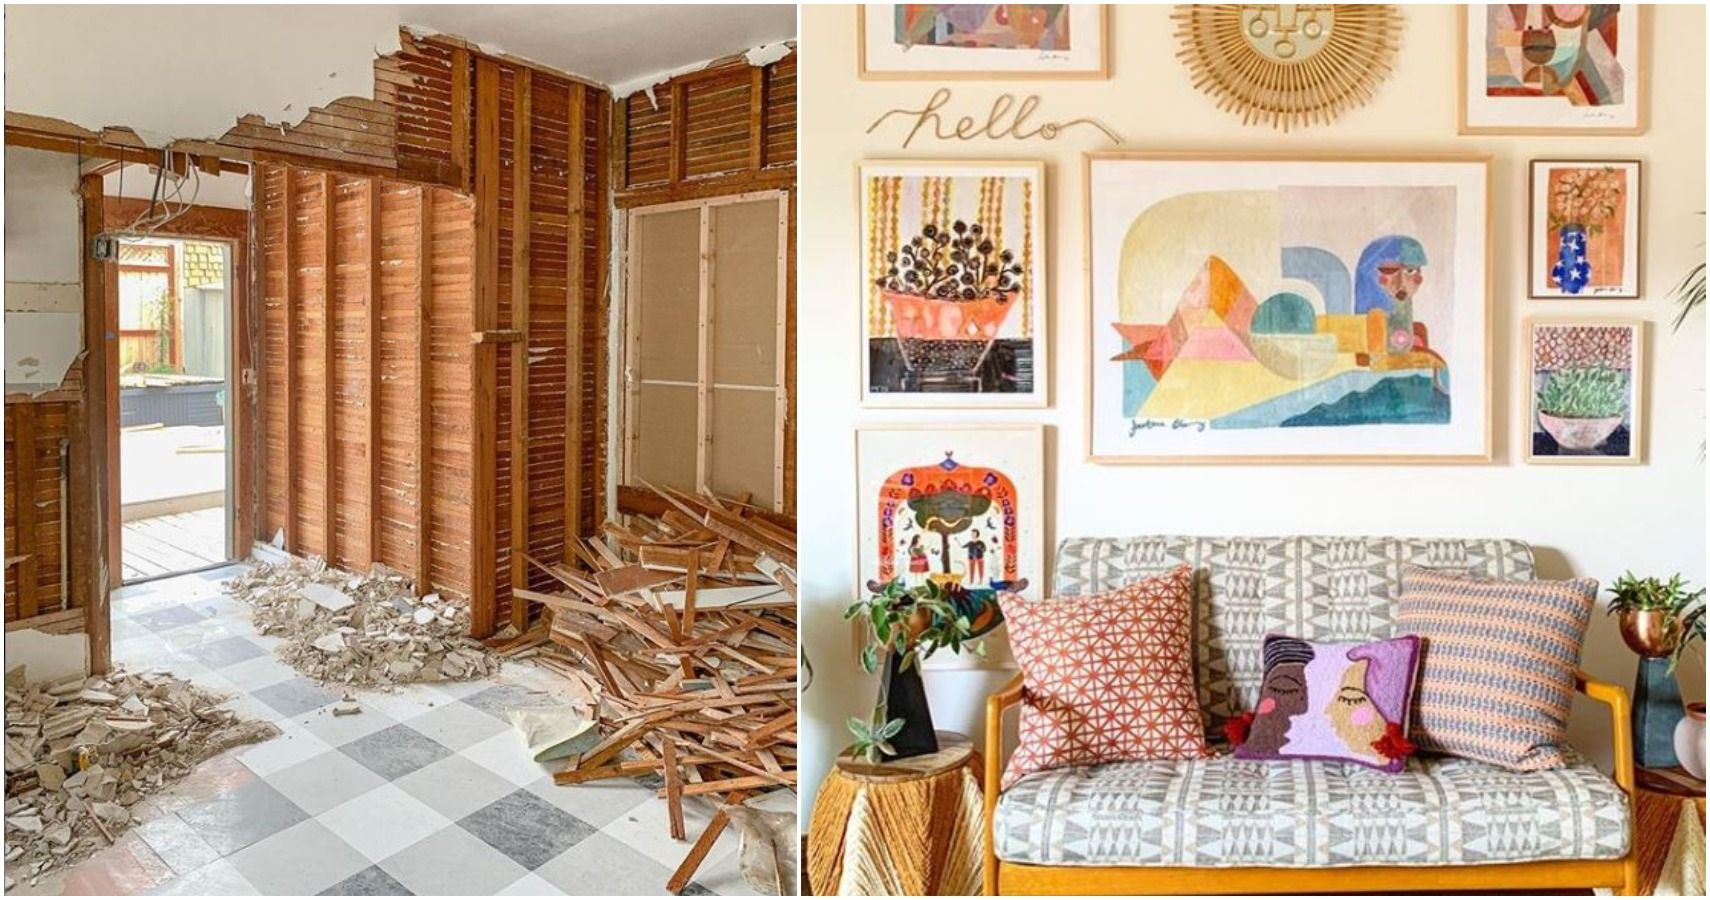 10 Most Satisfying Before And After Room Makeovers On Instagram